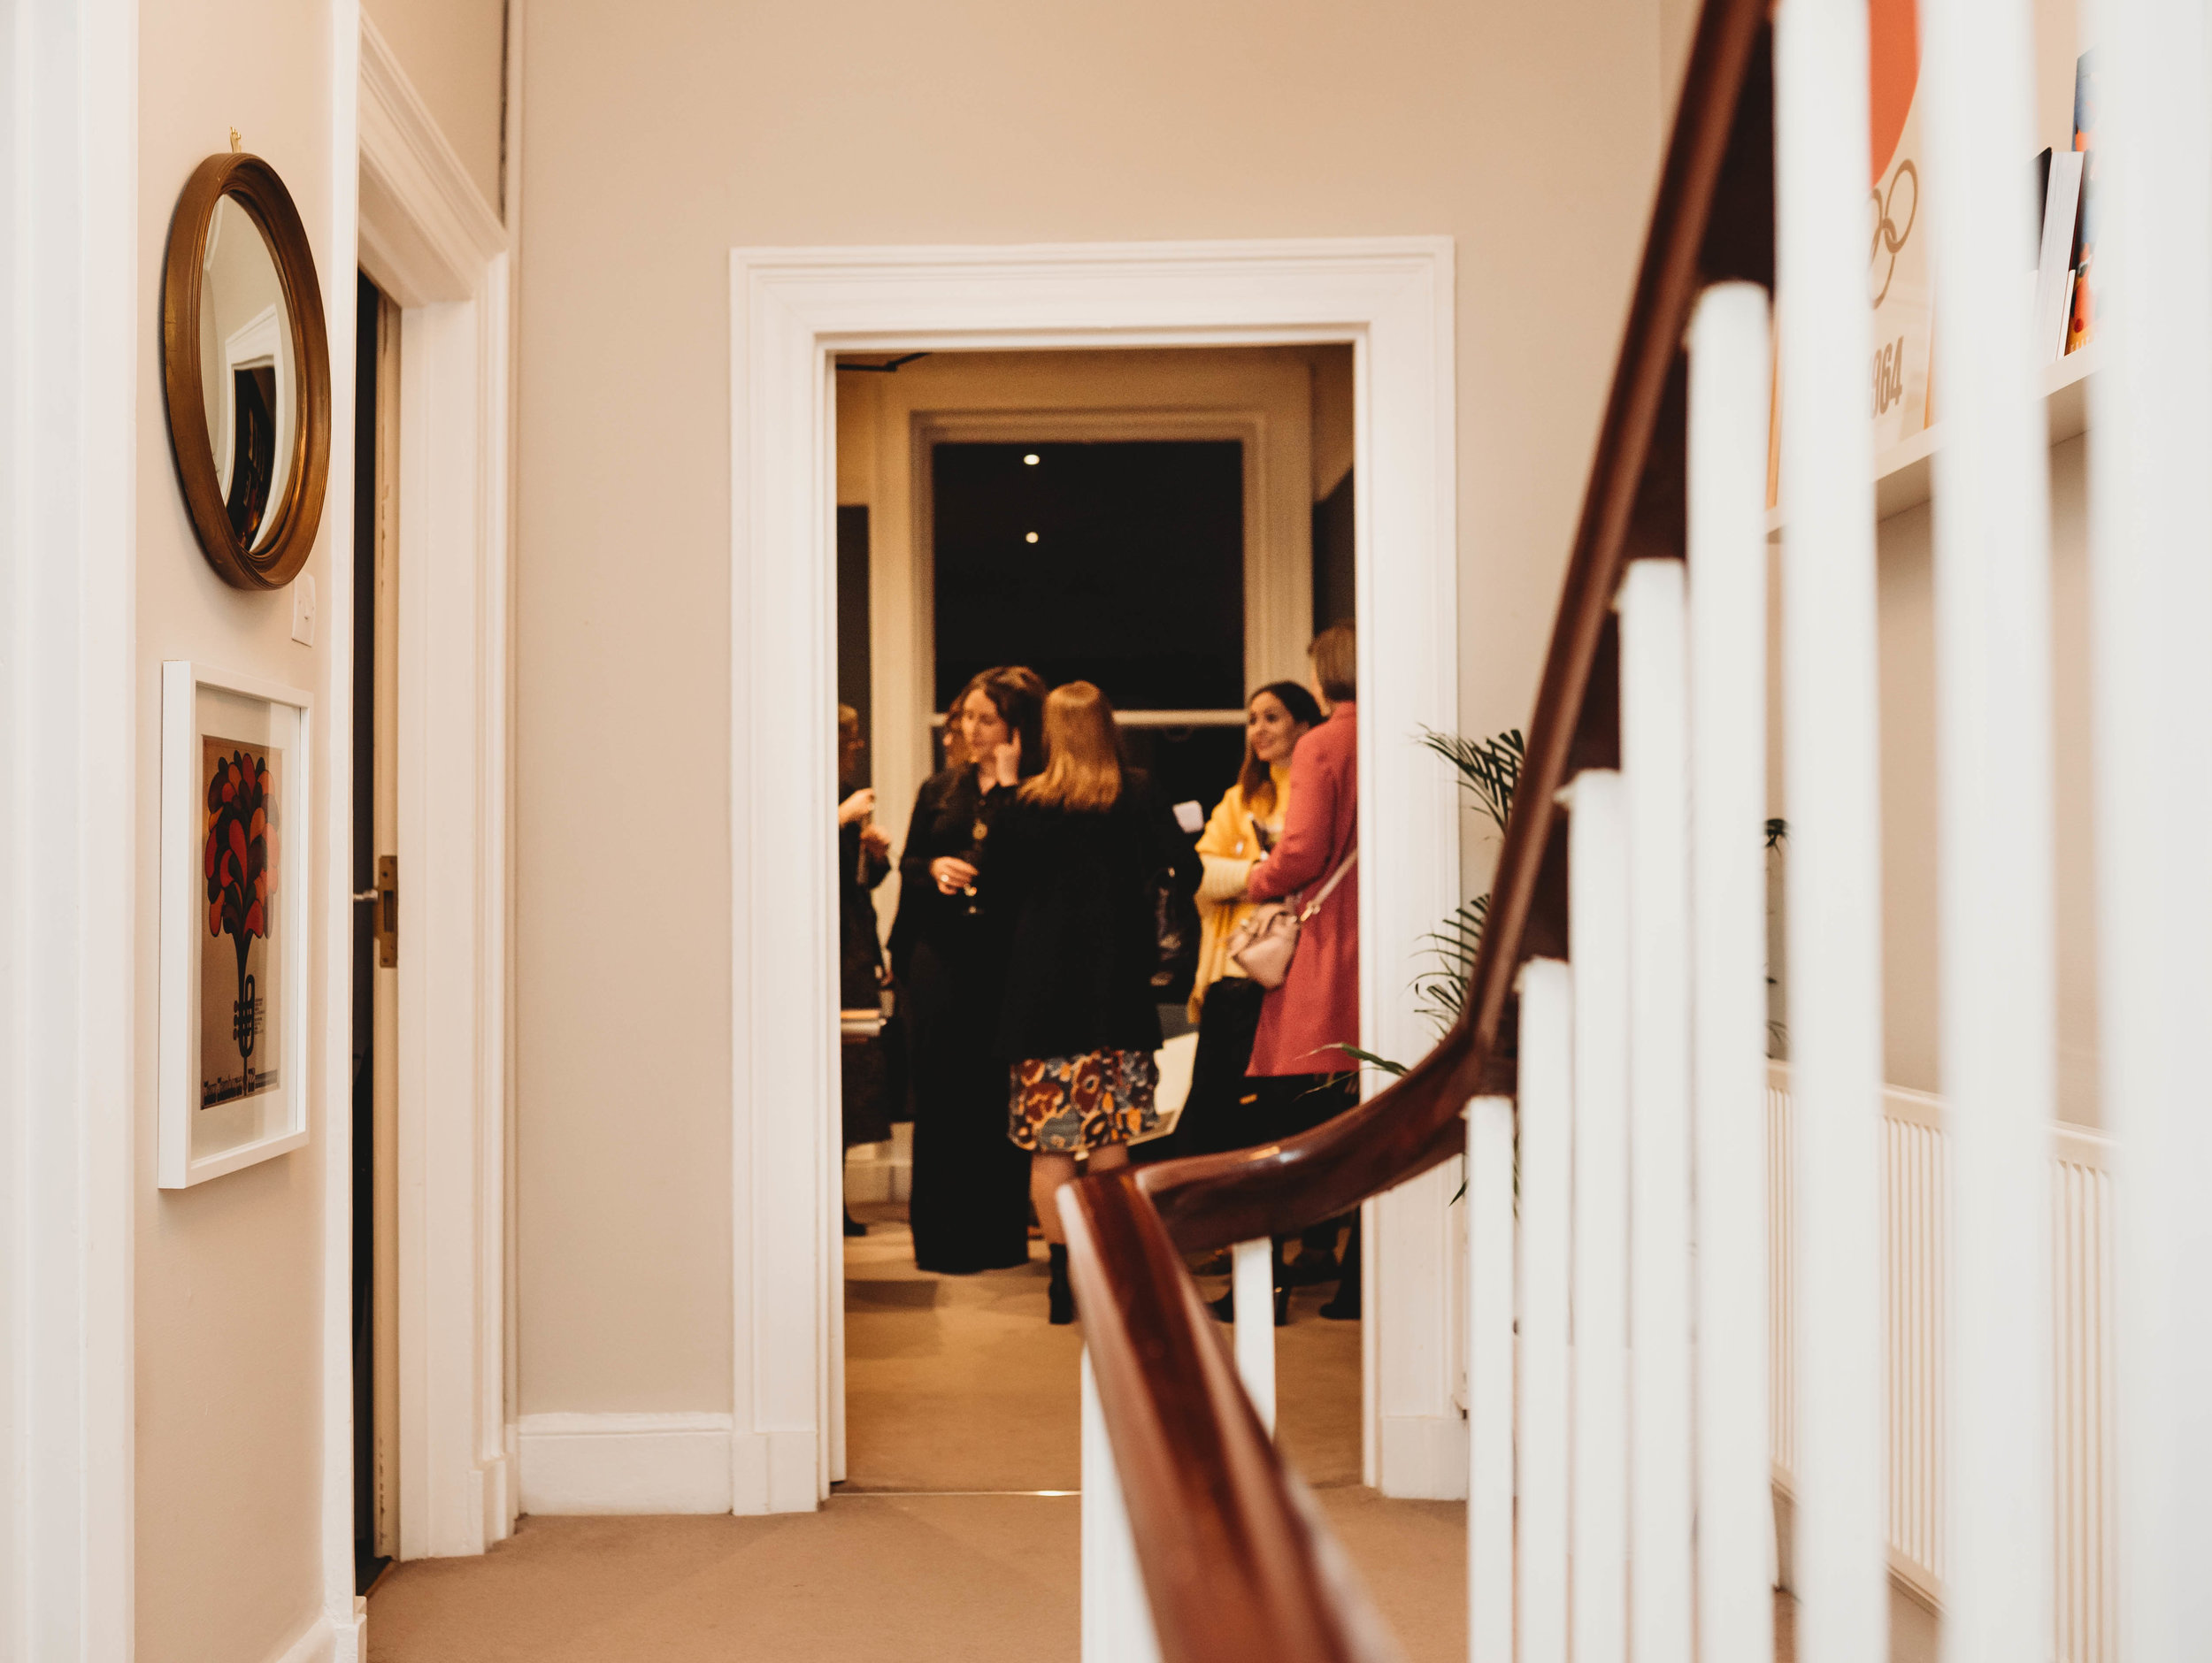 Spaces for collaboration, meetings and gatherings. Our doors are open.